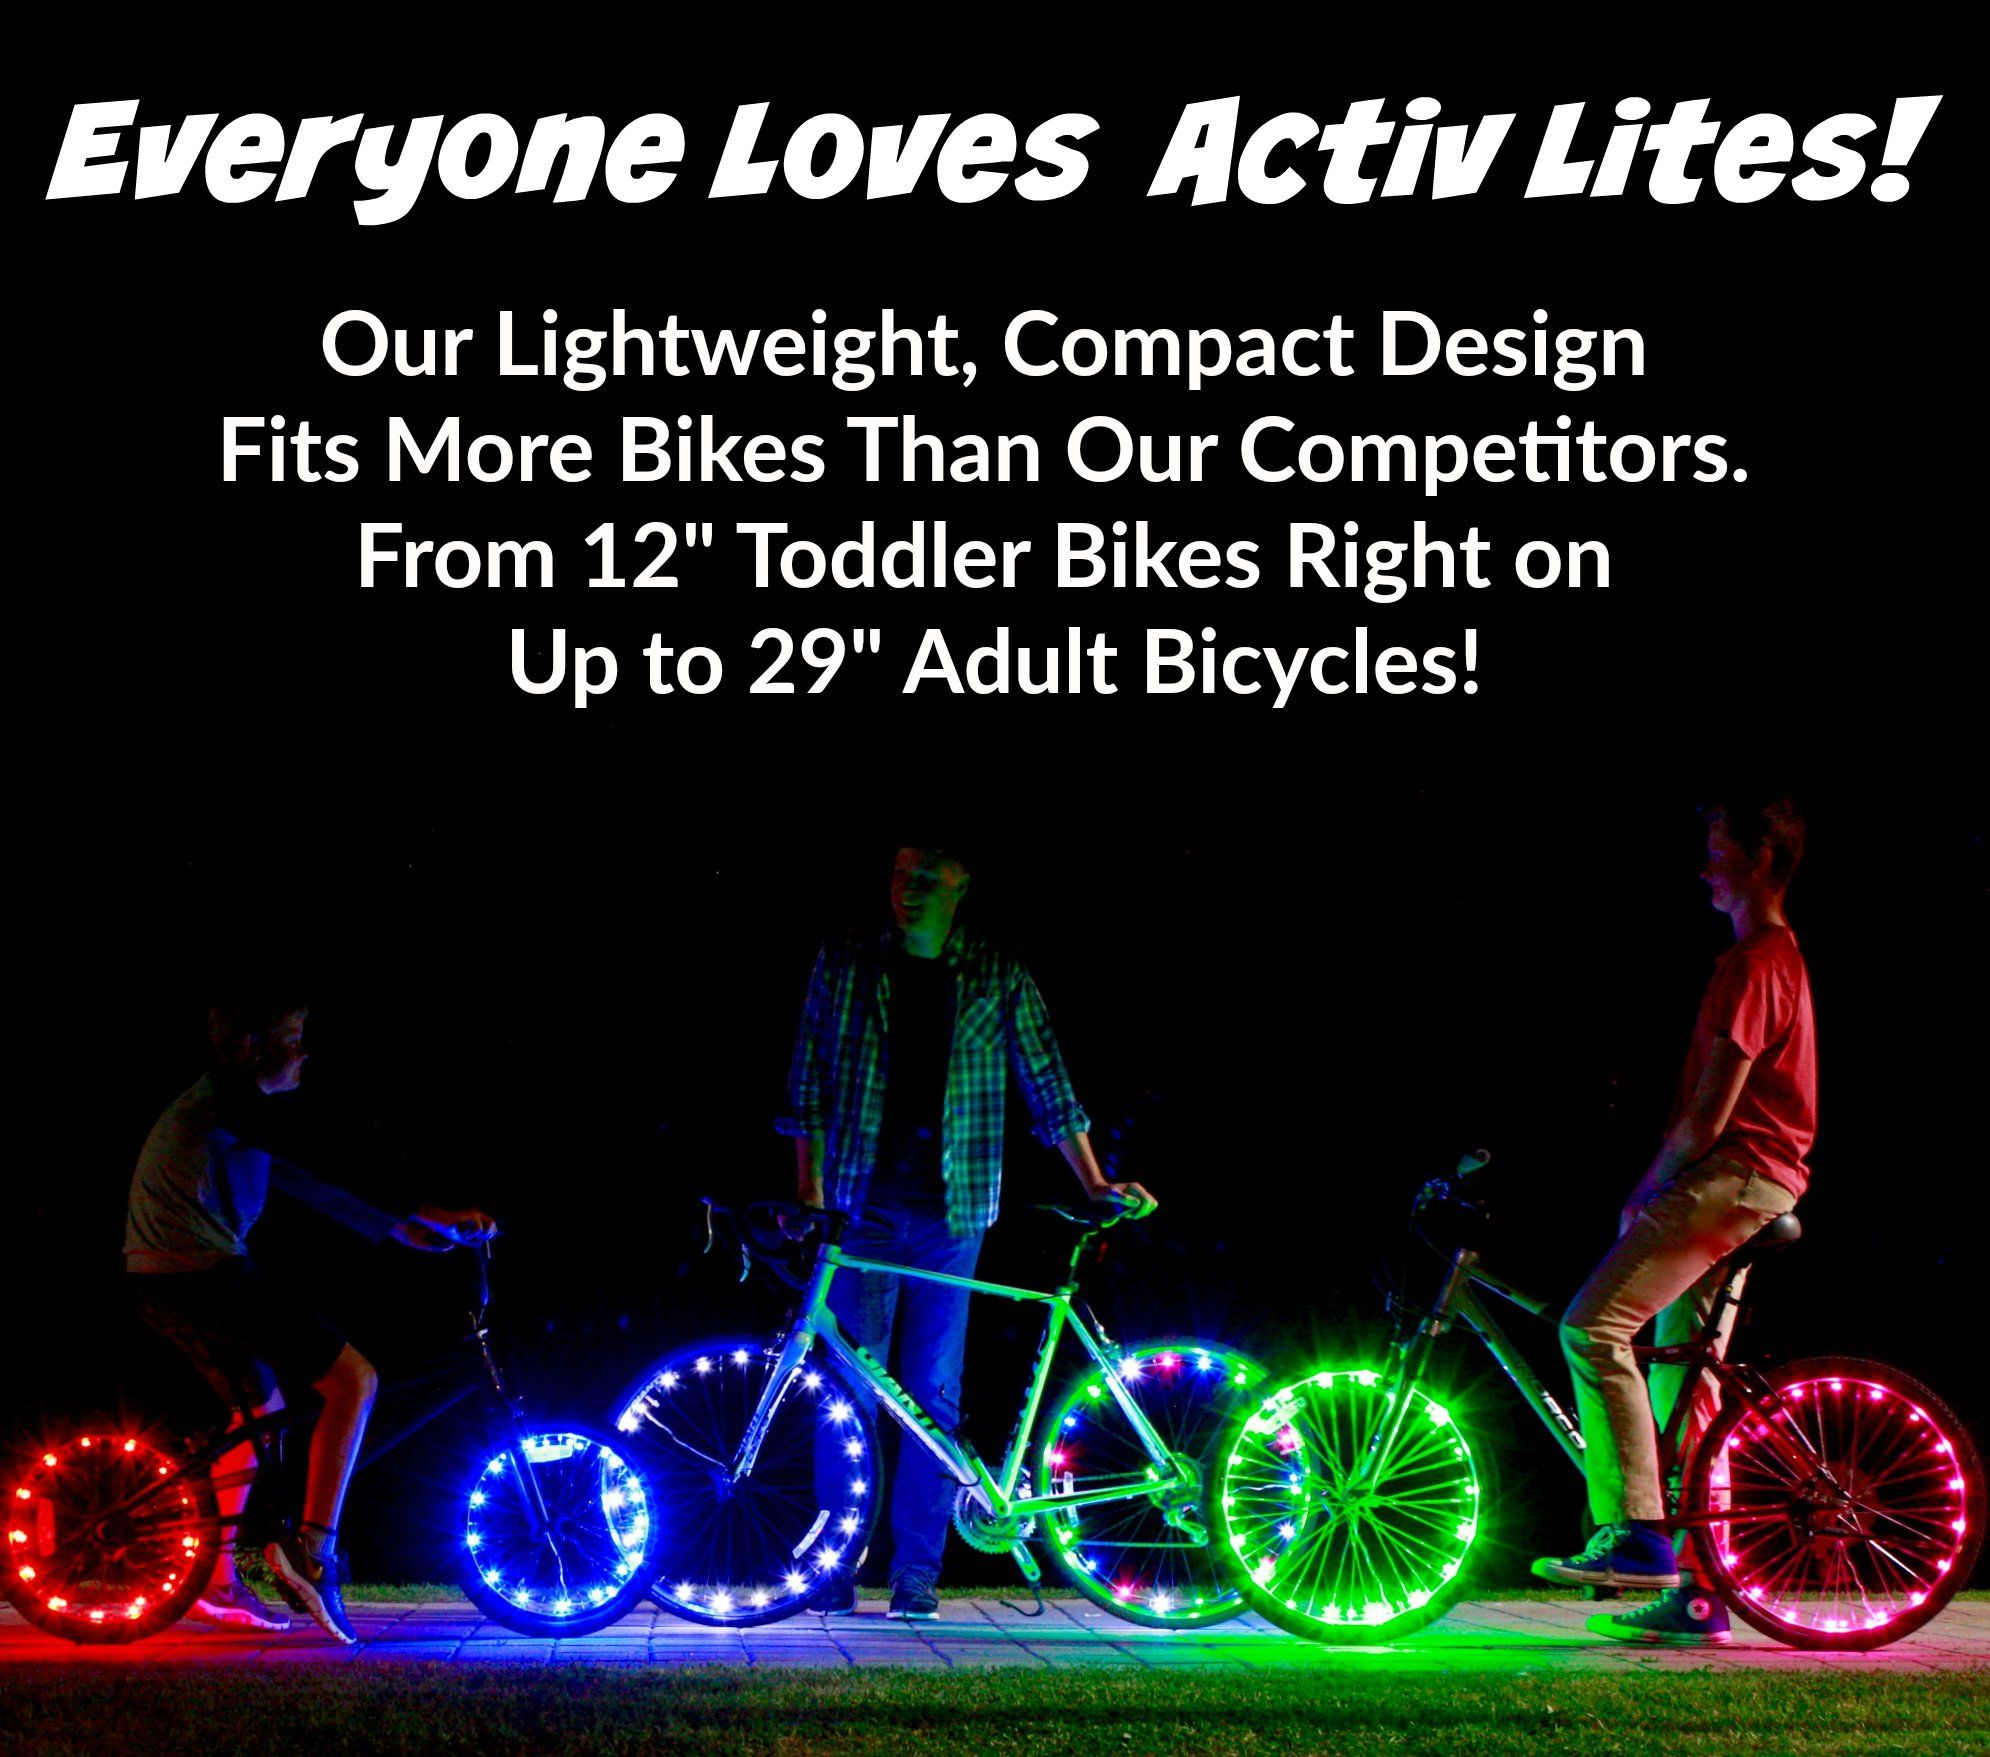 Activ Life Bicycle Tire Lights 1 Wheel Red Hot Led Bday Gift Ideas